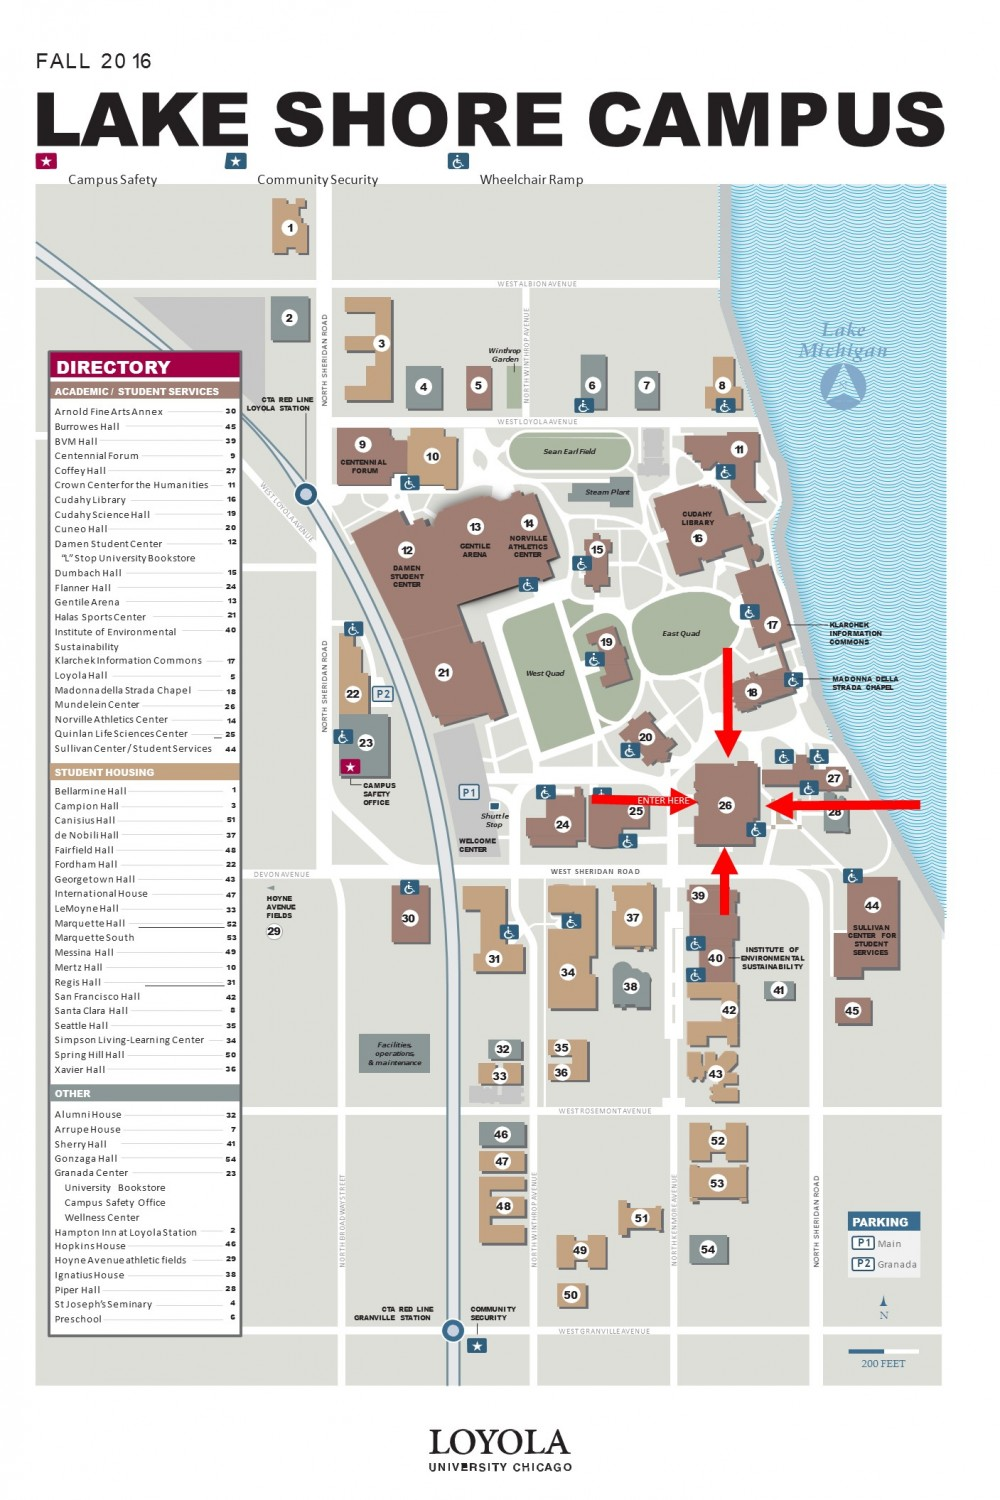 Loyola University Lake Shore Campus Map – NUMBERS N3RDS